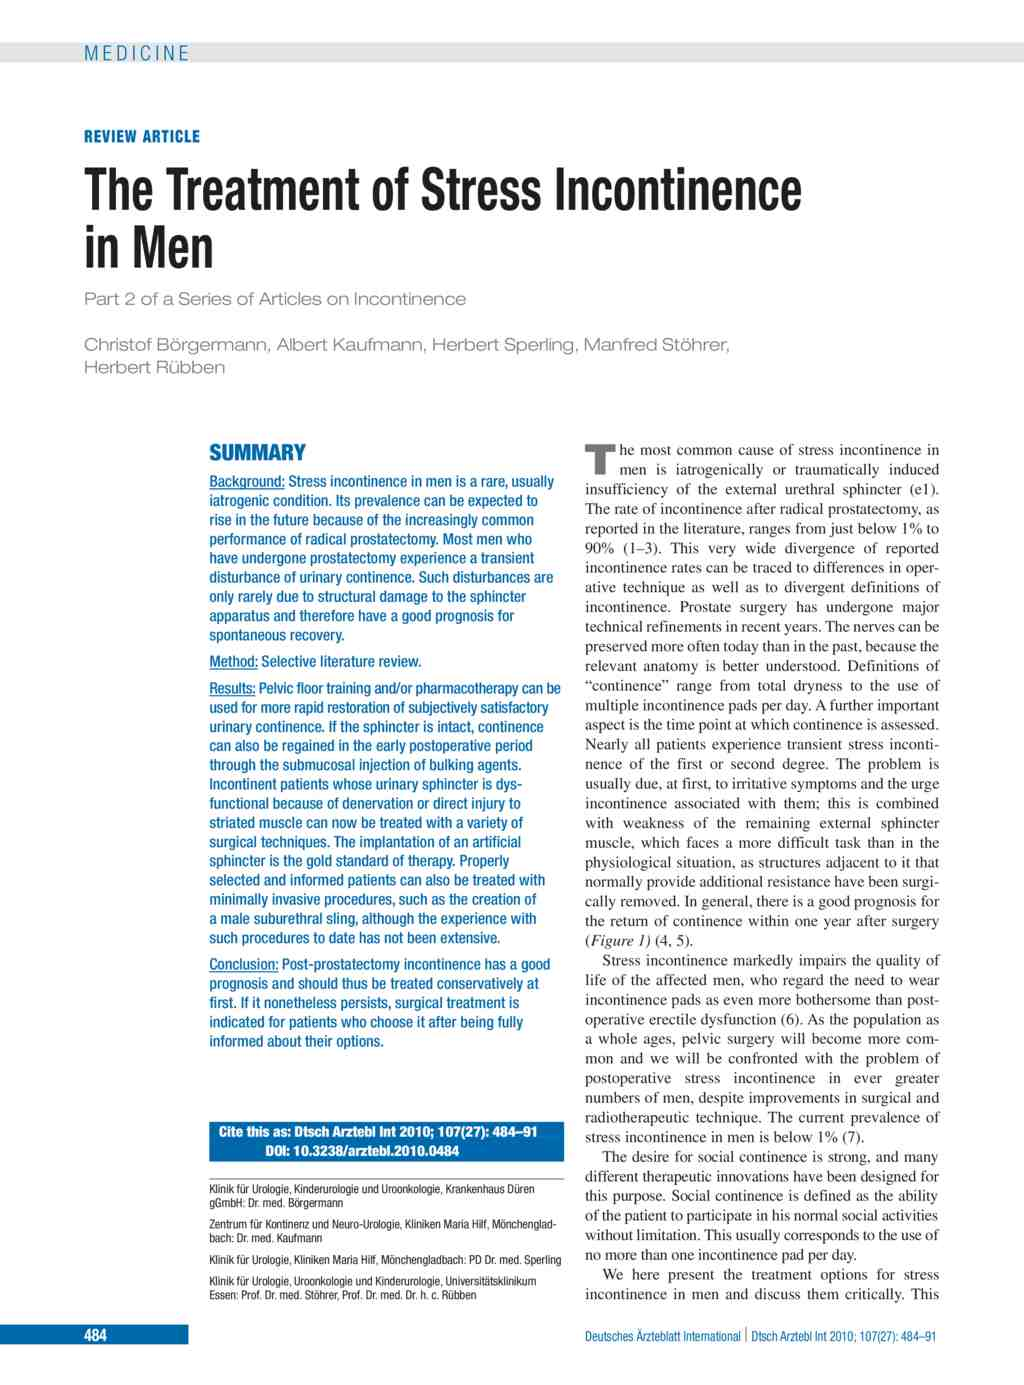 The Treatment of Stress Incontinence in Men (09 07 2010)